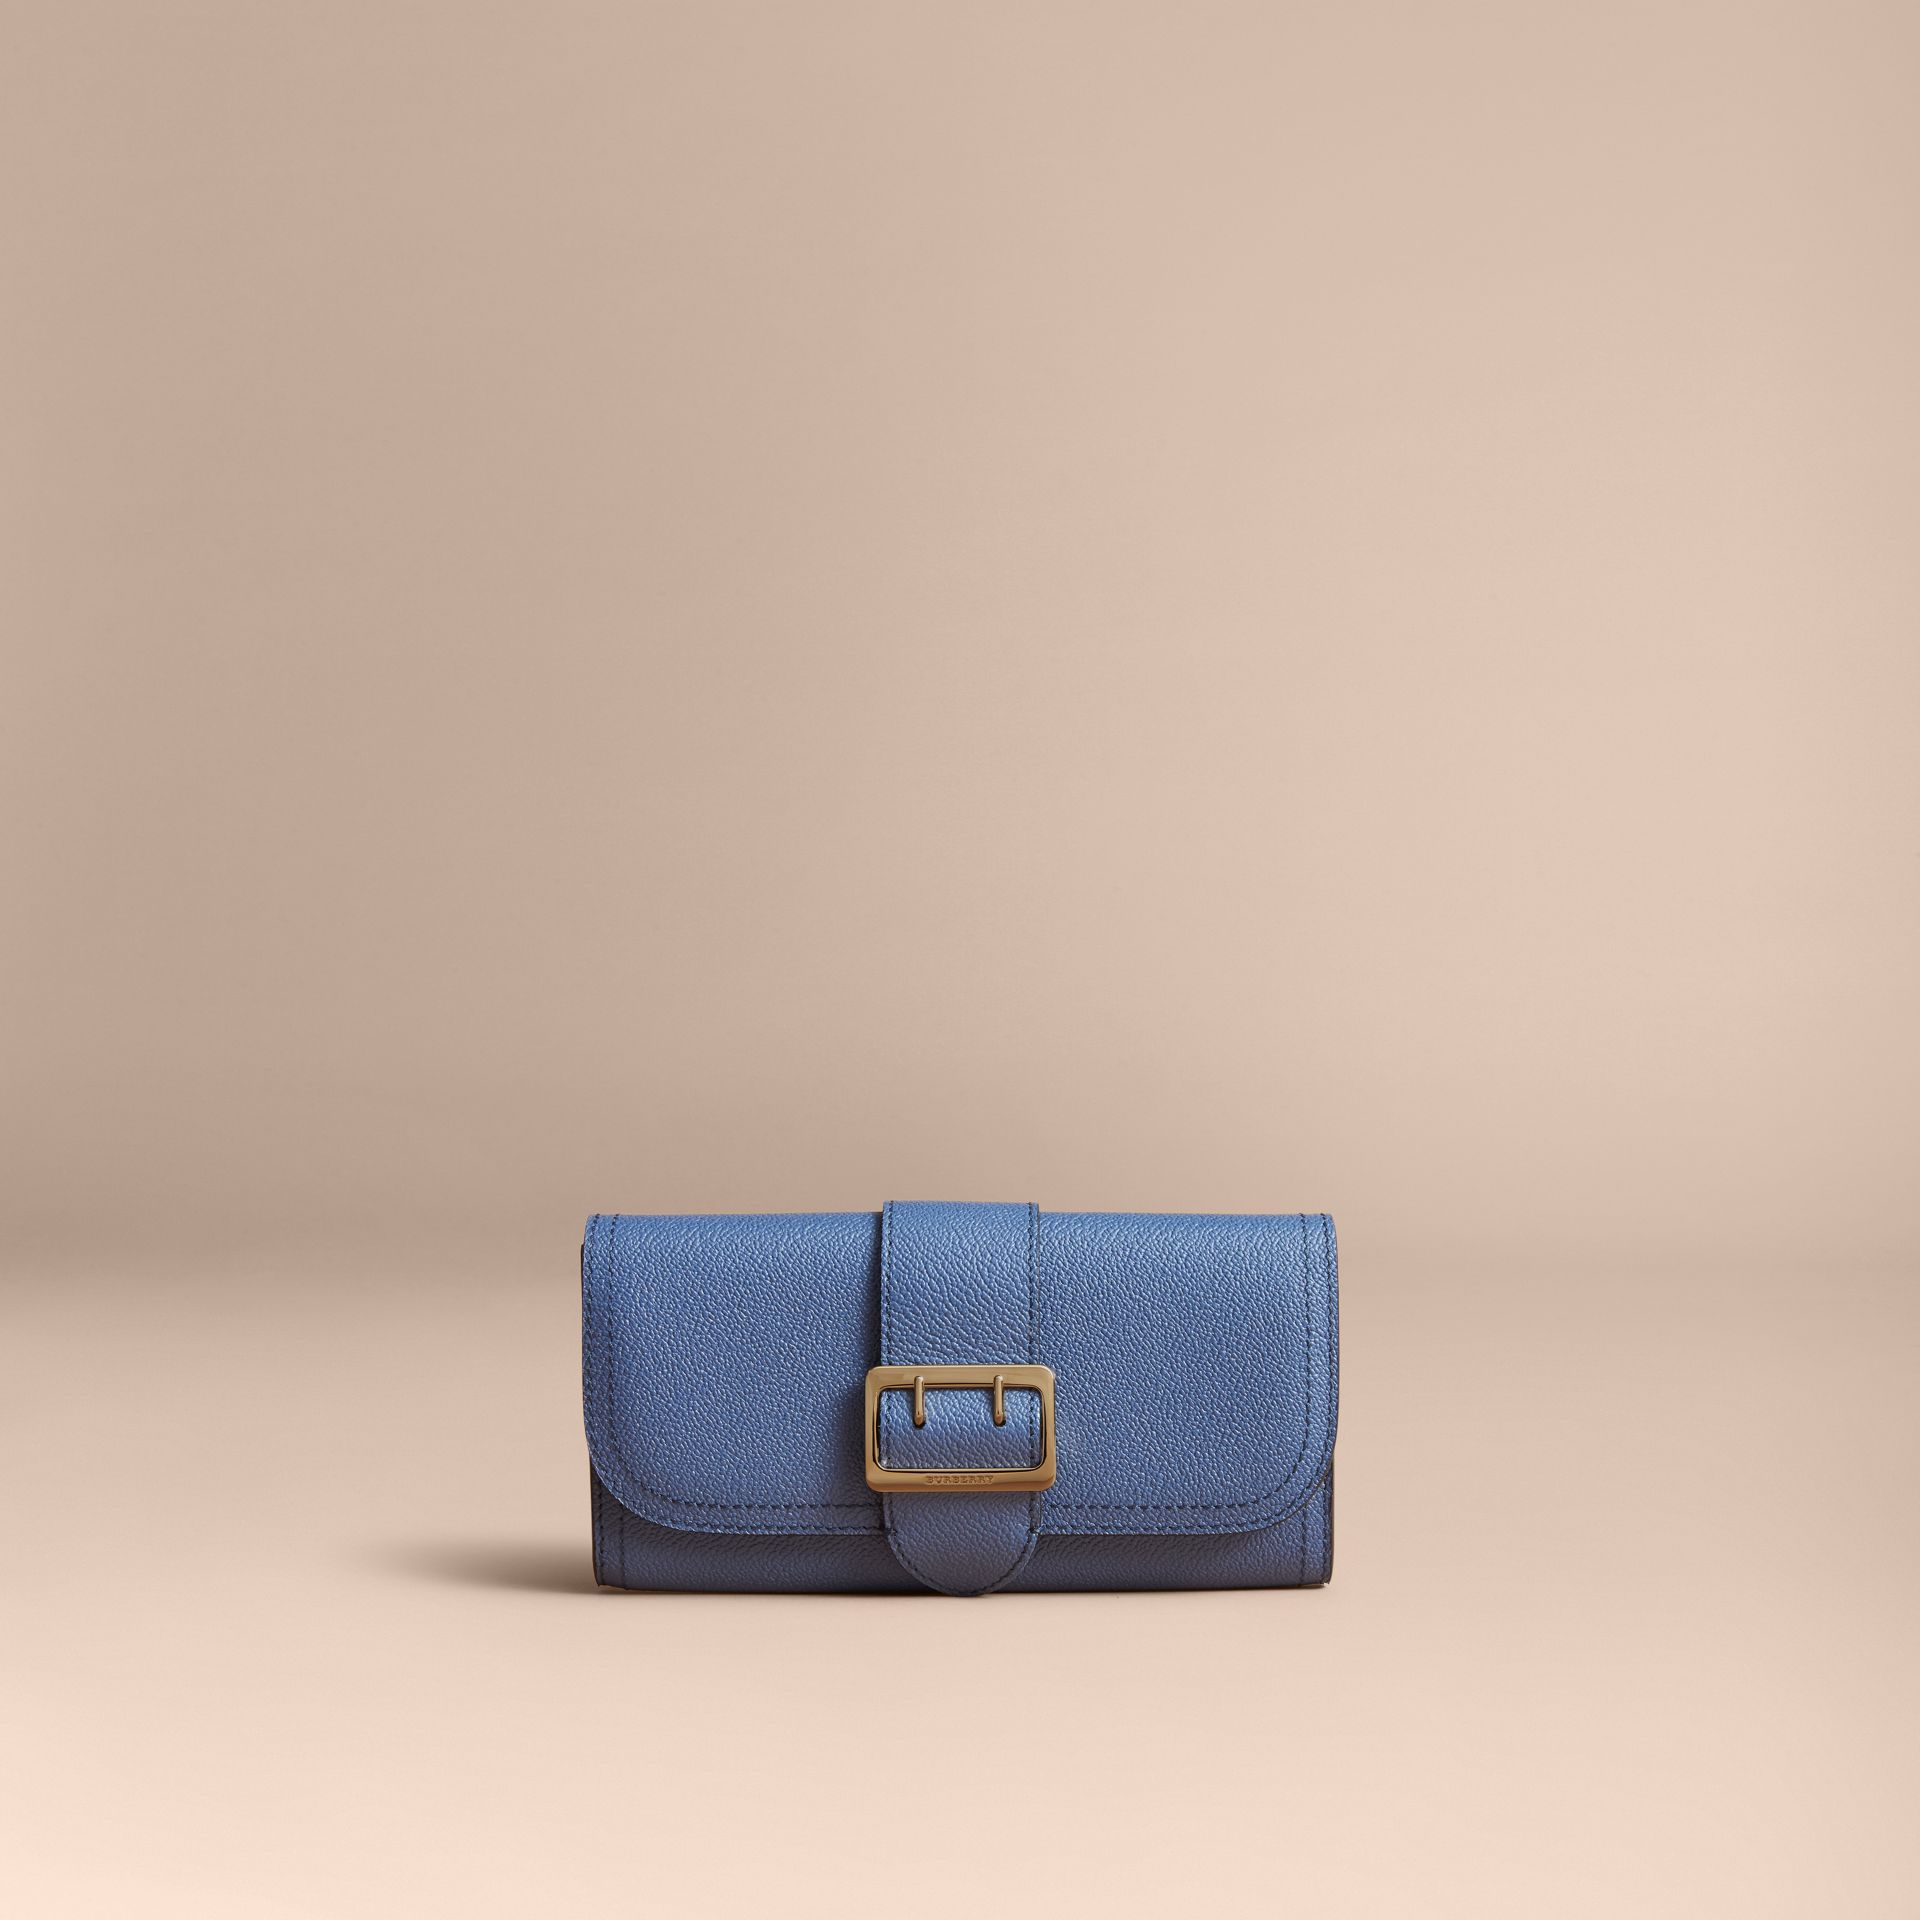 Textured Leather Continental Wallet in Steel Blue - Women | Burberry Singapore - gallery image 5